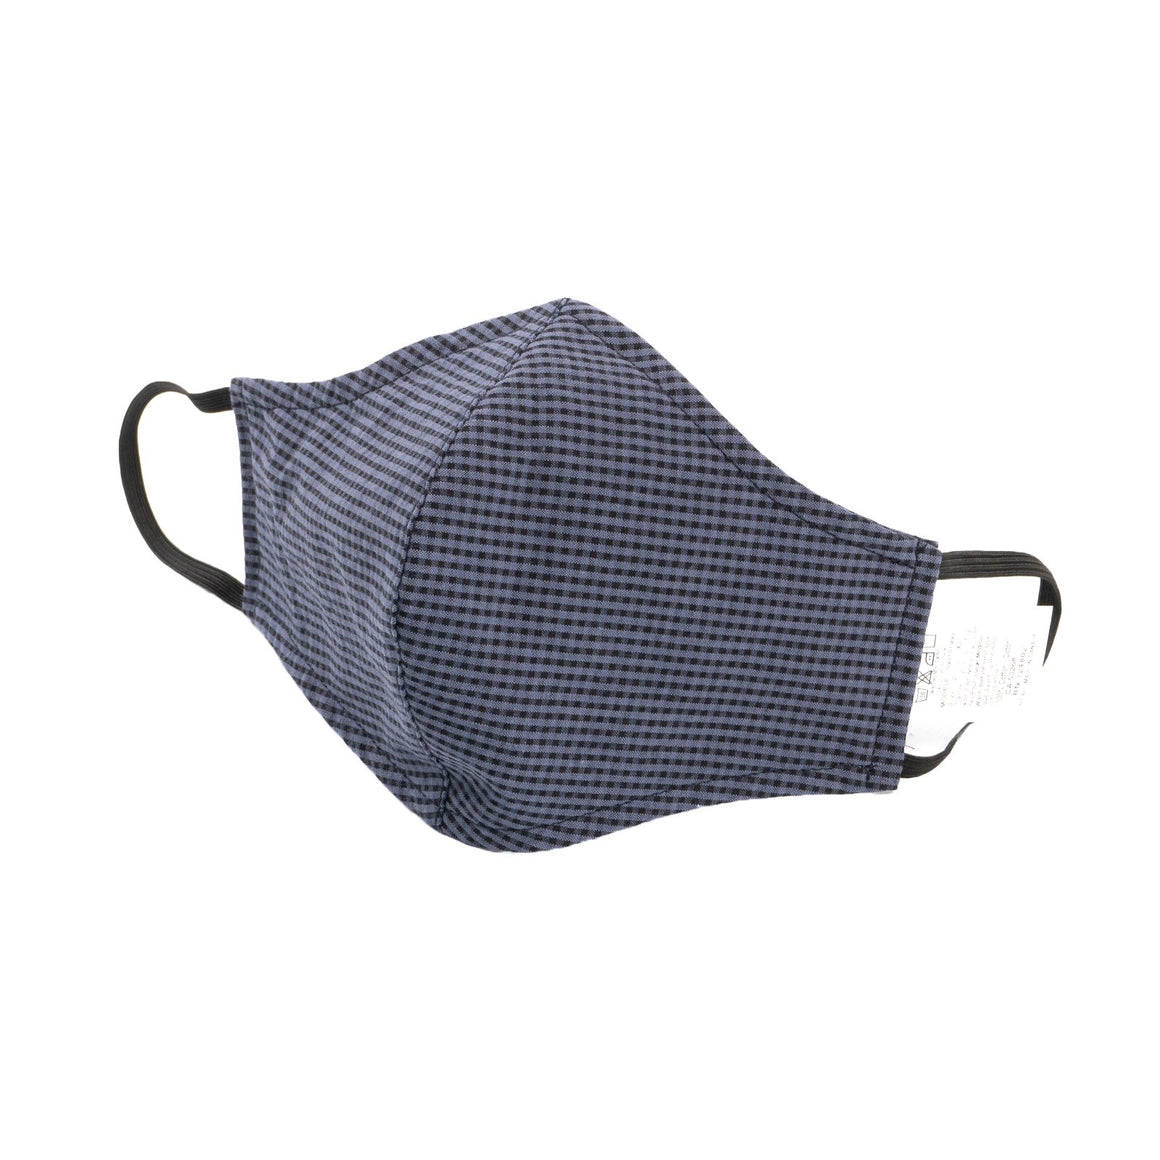 Adult Protective Face Mask - Gingham Check Blue/Navy